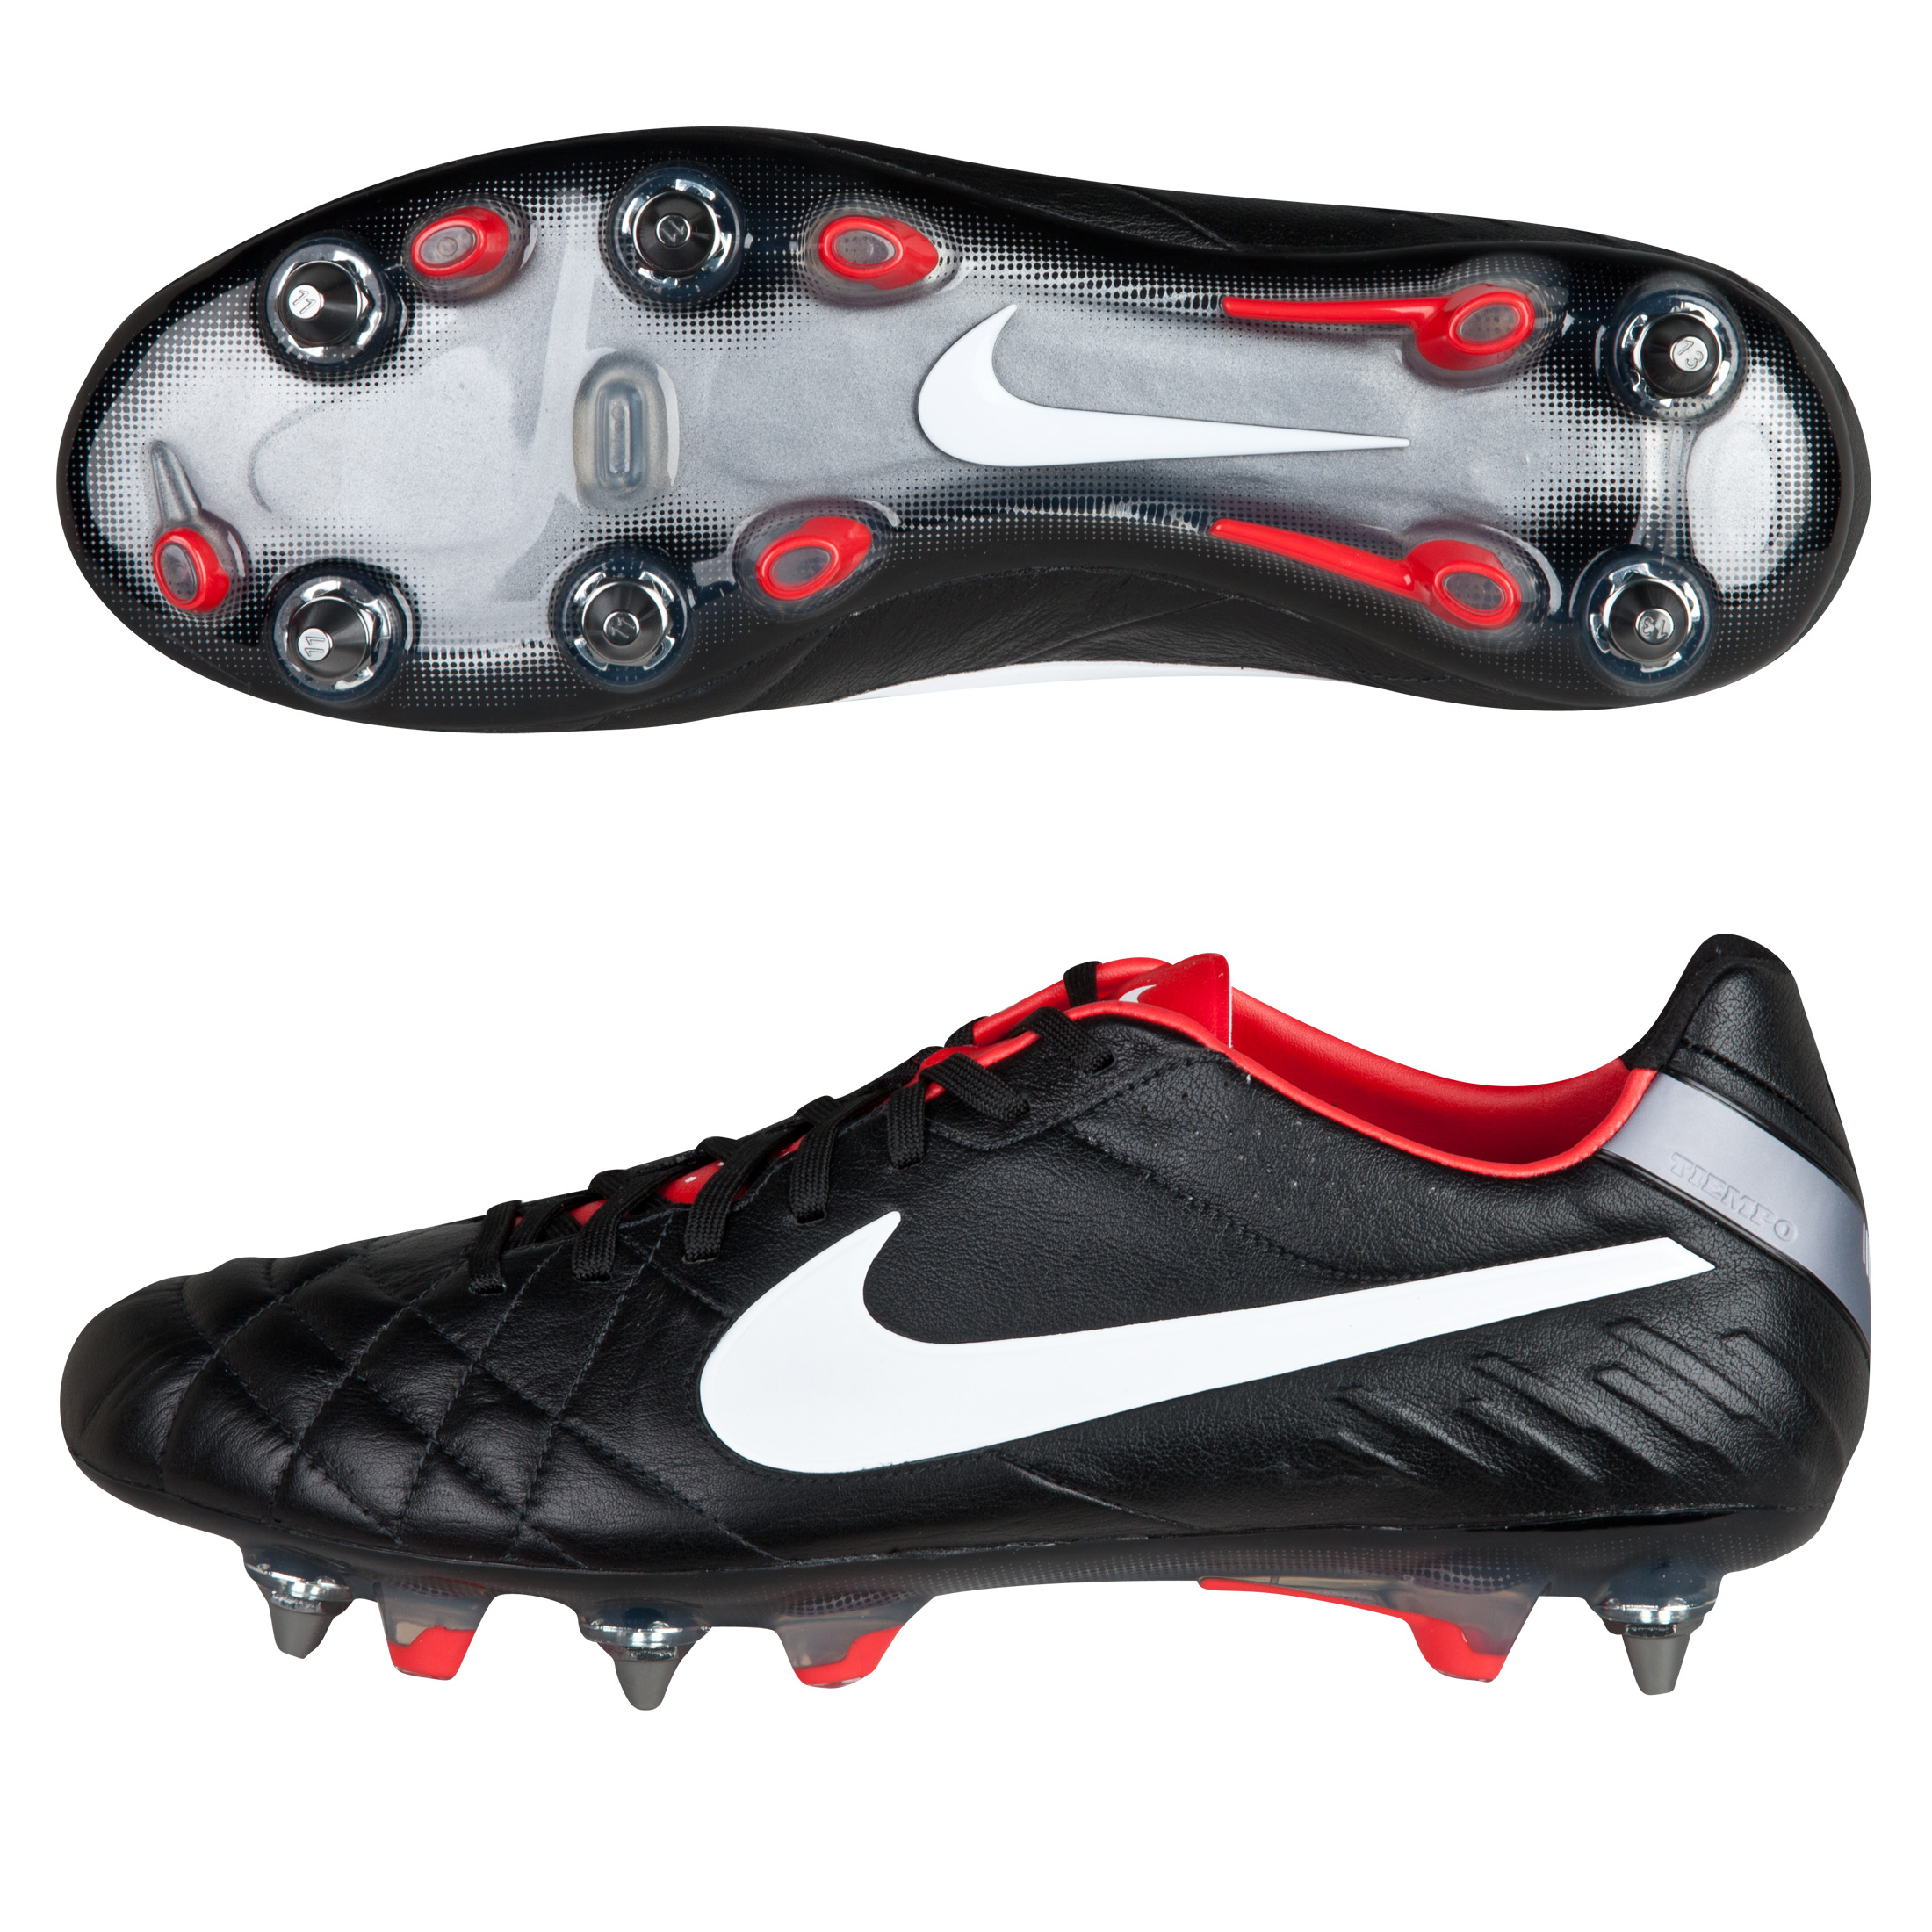 Nike Tiempo Legend IV SG-Pro Football Boots - Black/White/Challenge Red